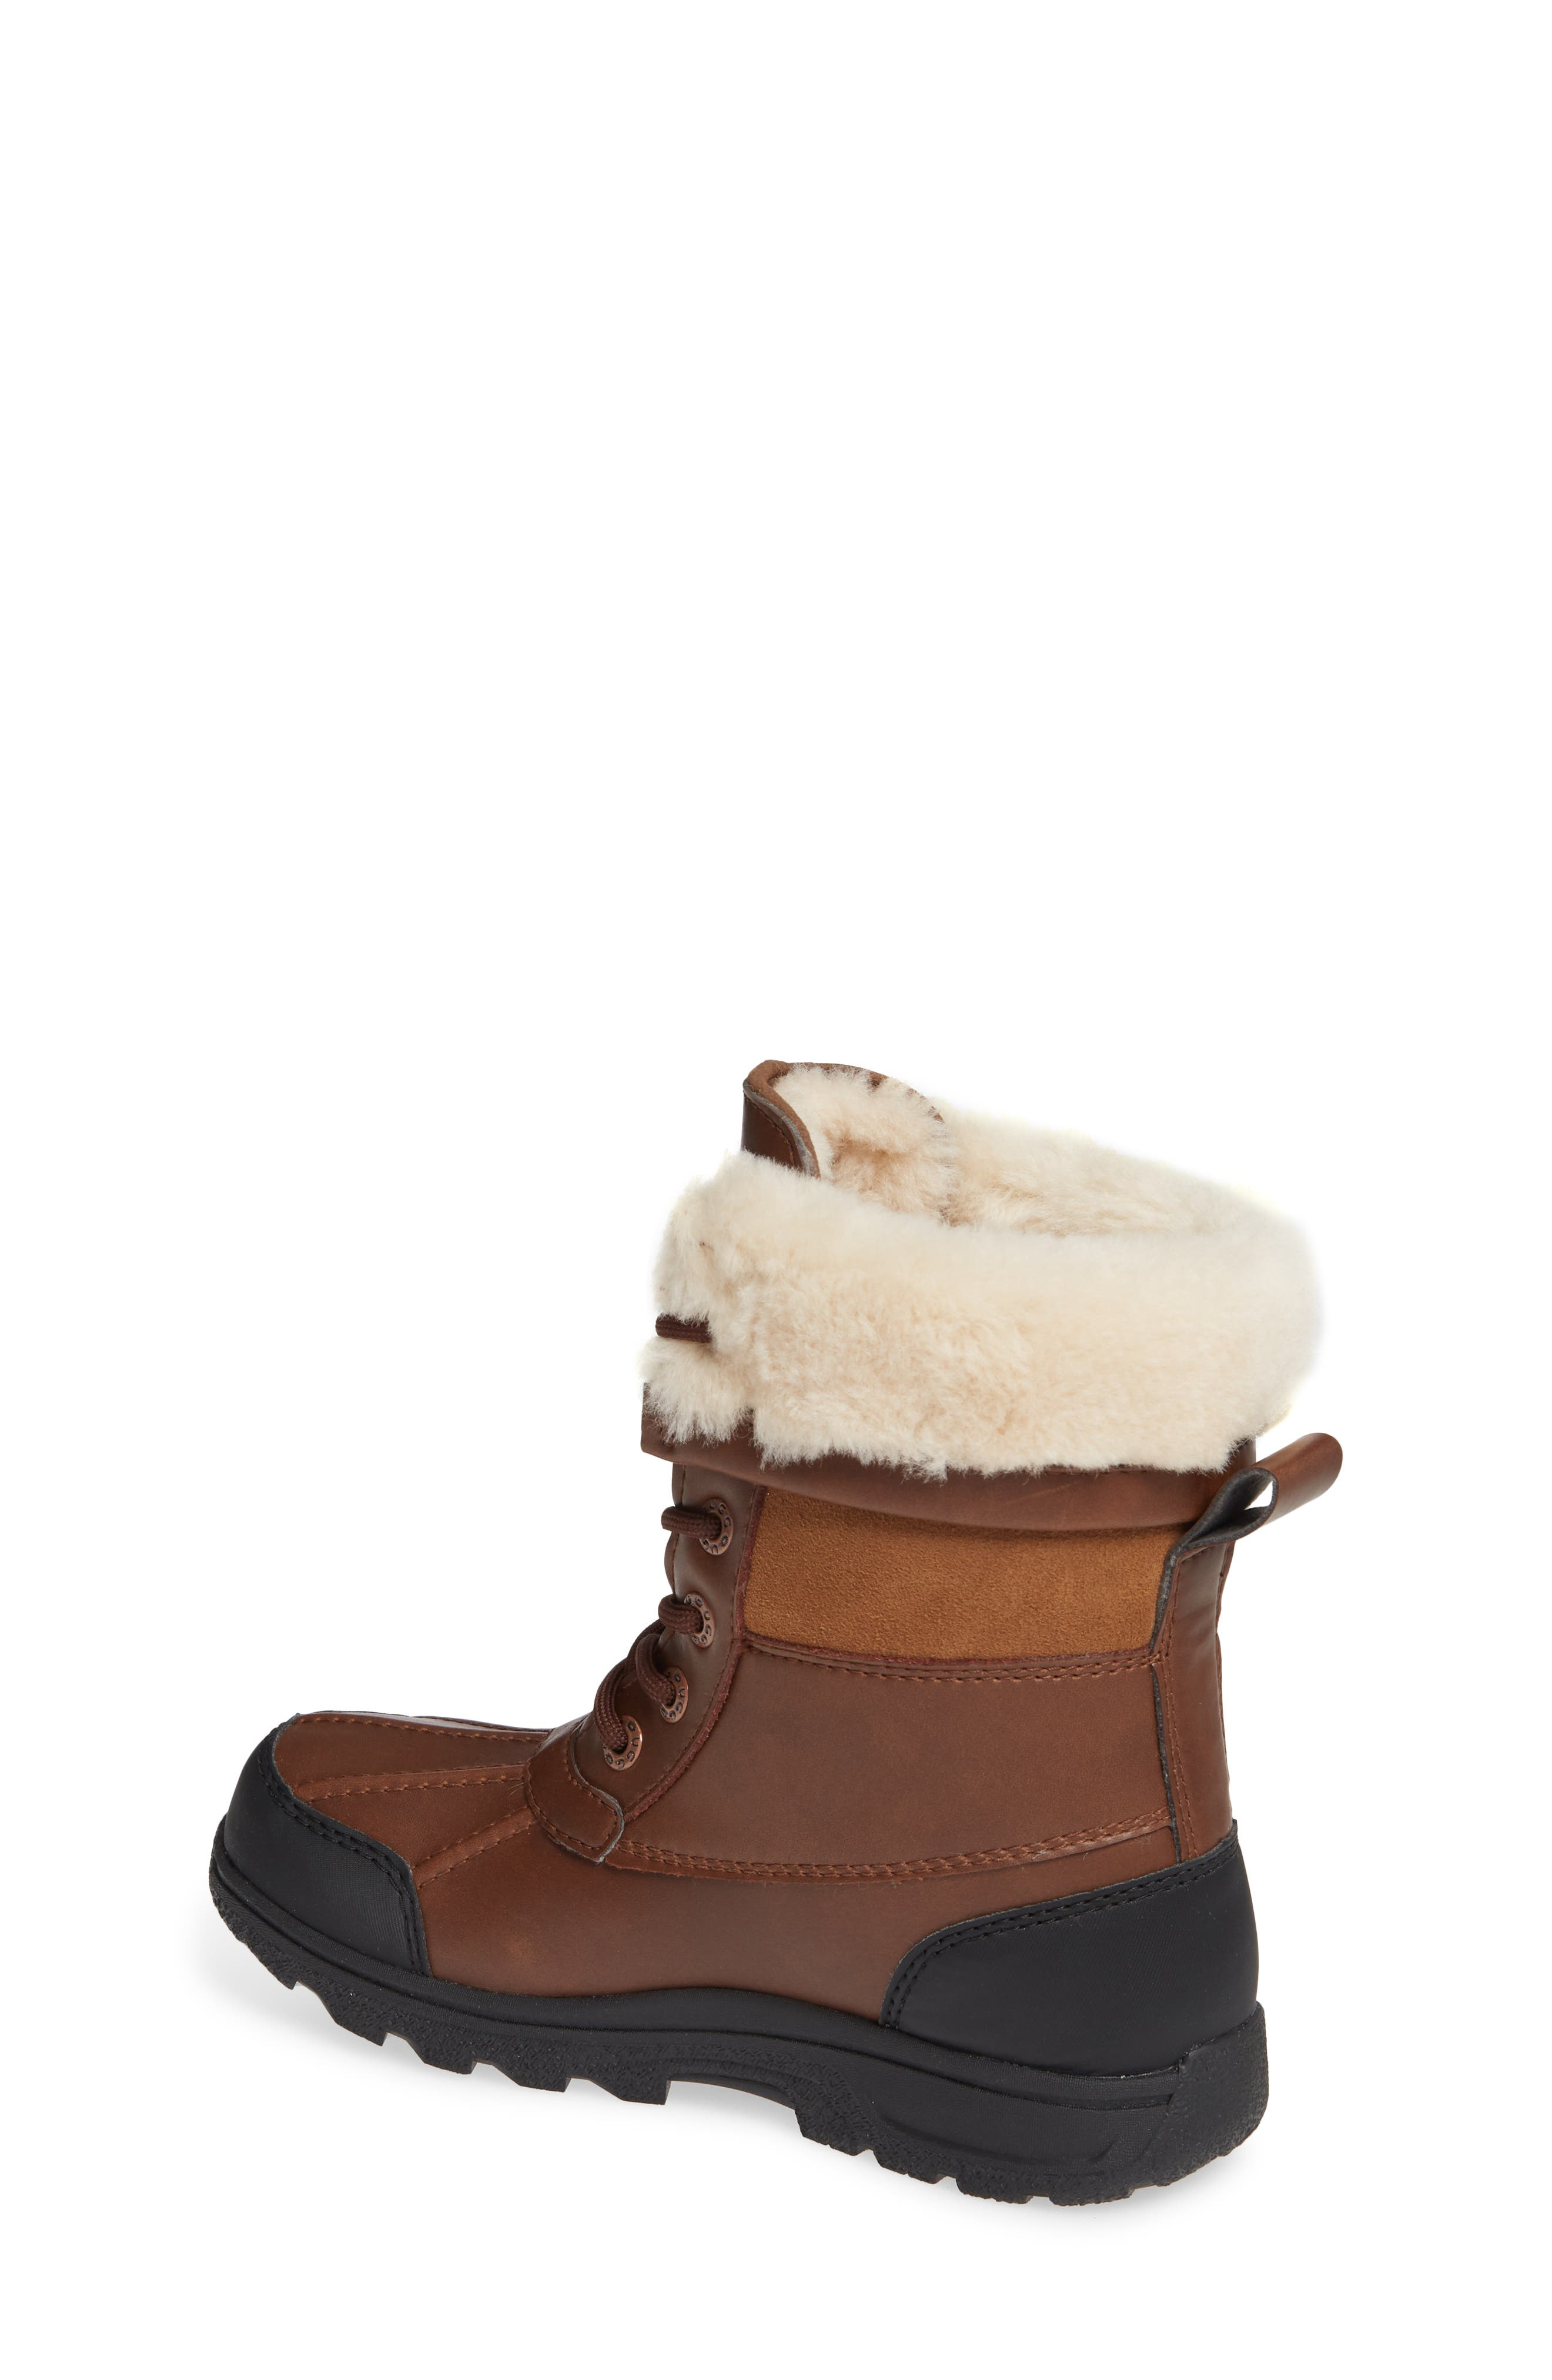 UGG<SUP>®</SUP>, Butte II Waterproof Winter Boot, Alternate thumbnail 2, color, WORCHESTER